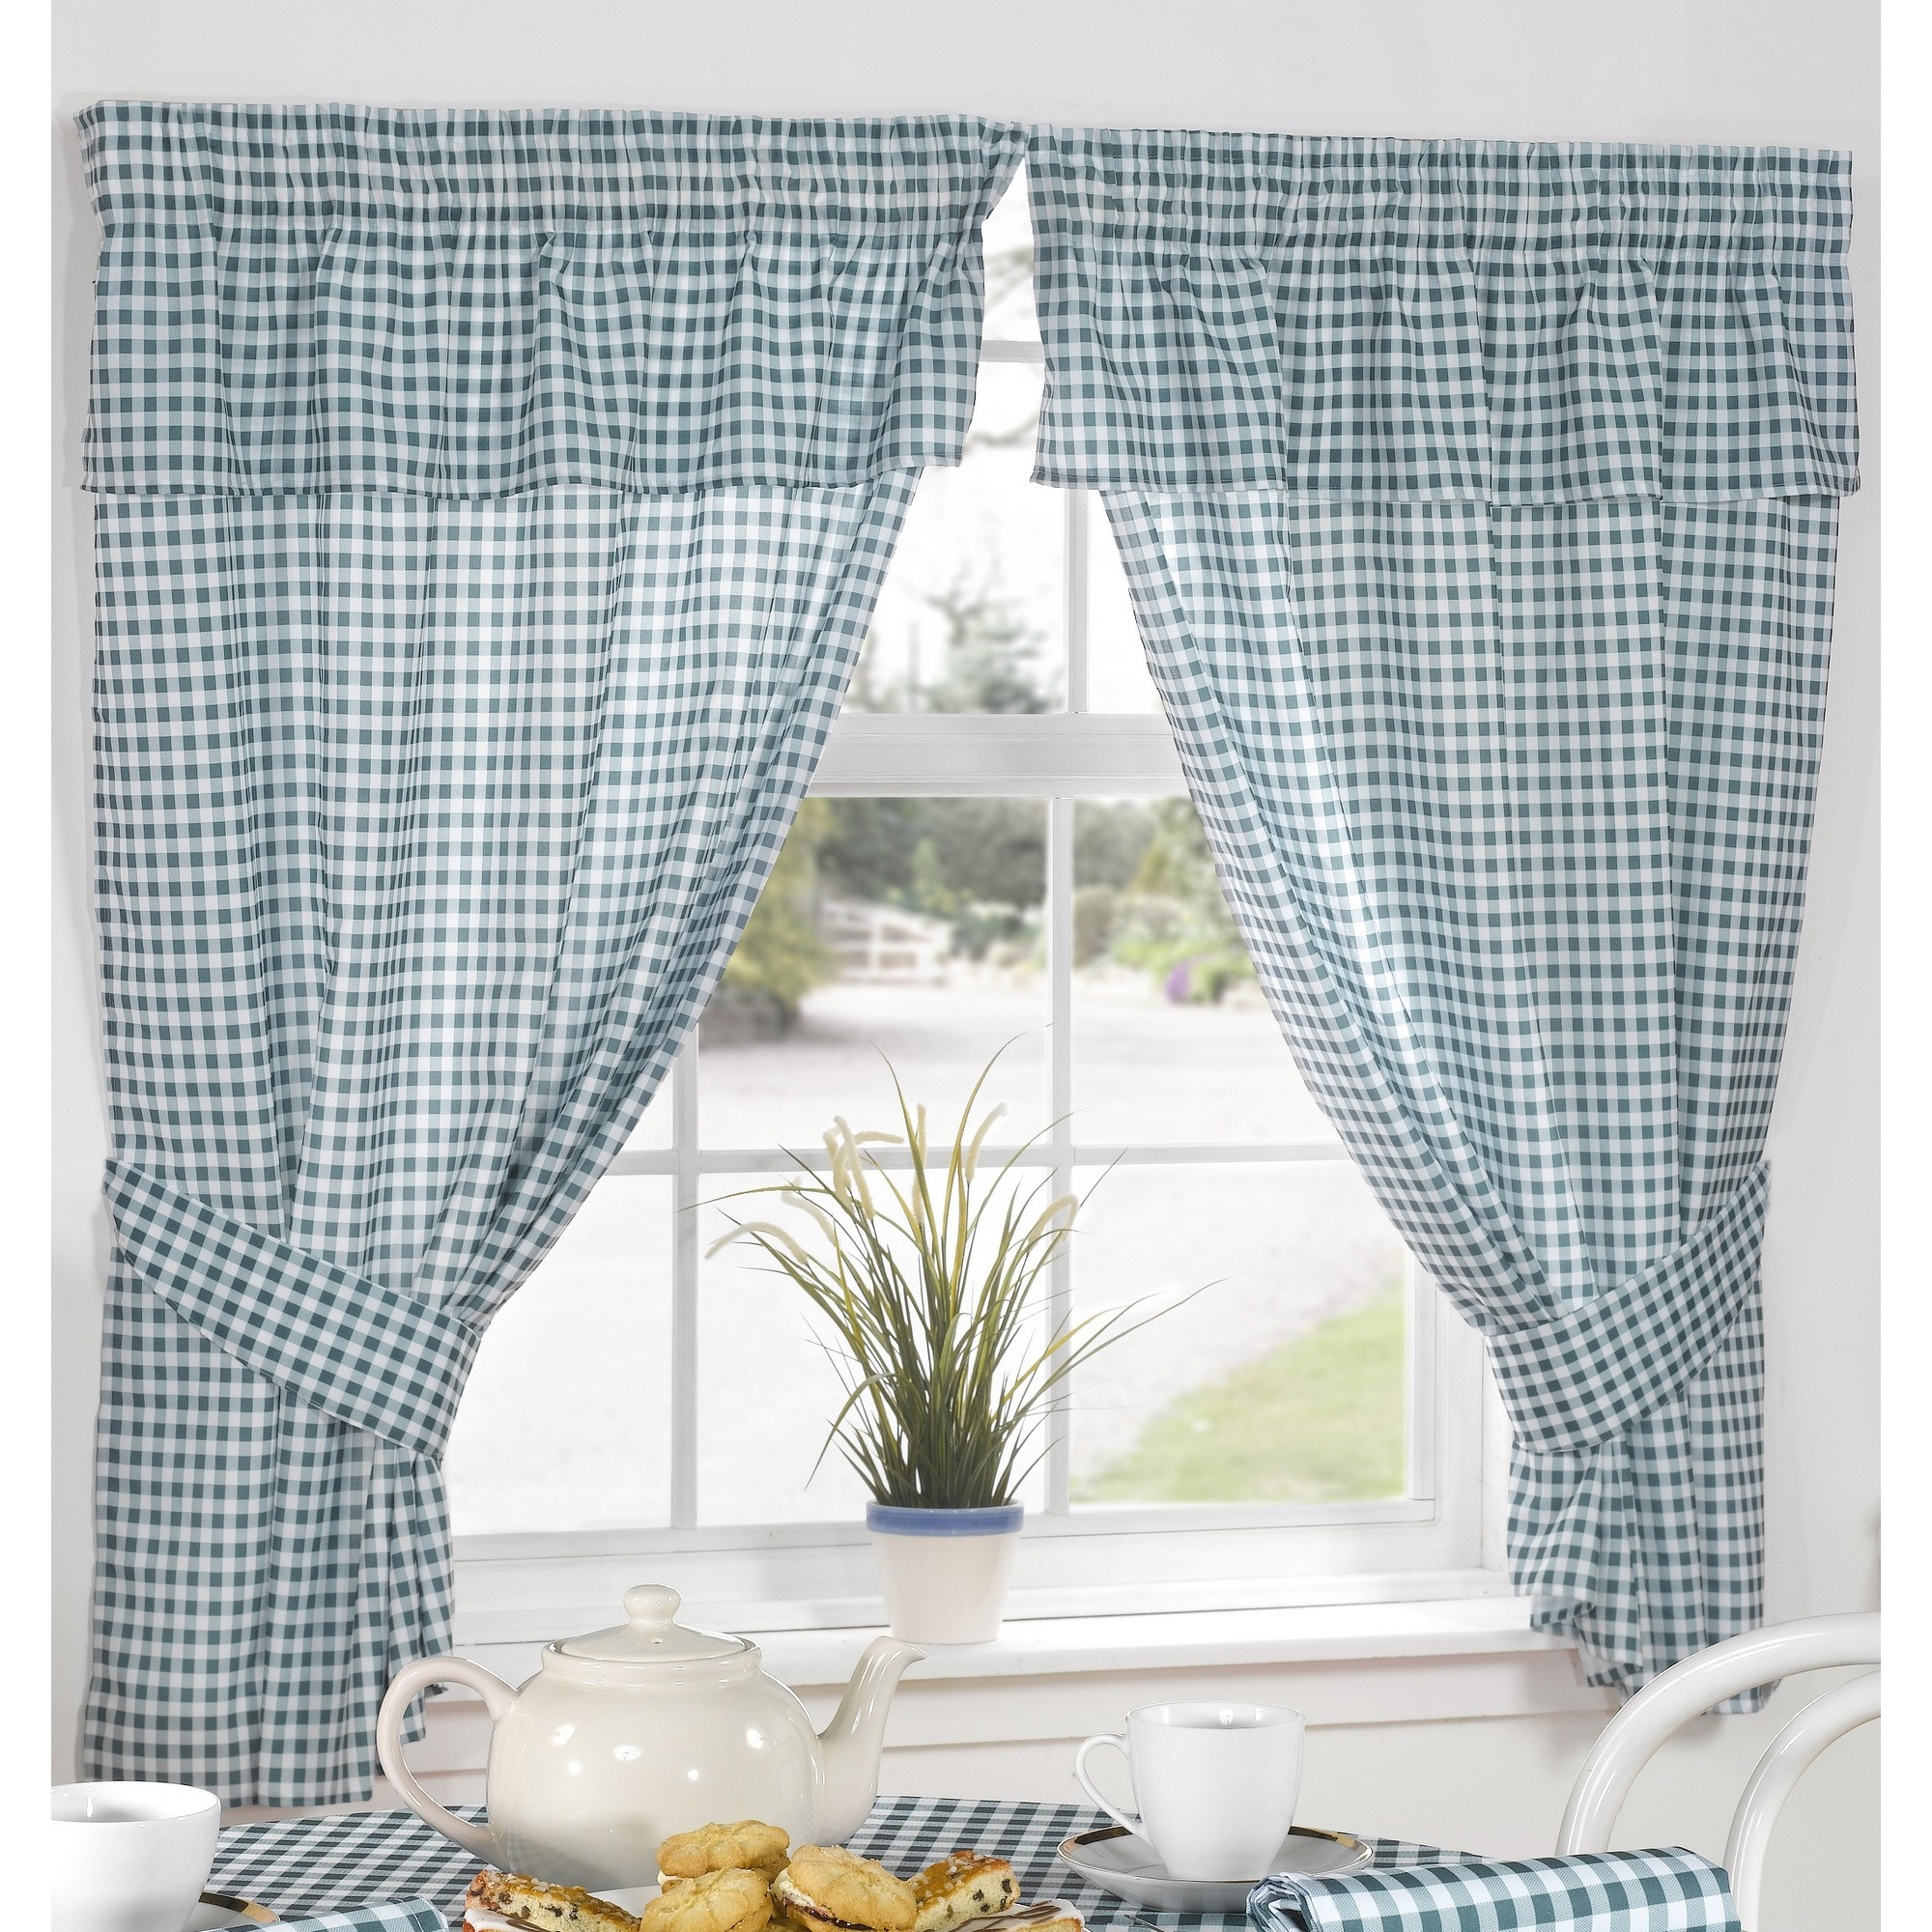 Gingham Curtains Red And White Gingham Curtains Kitchen: Molly Gingham Check Pattern Ready Made Kitchen Curtains